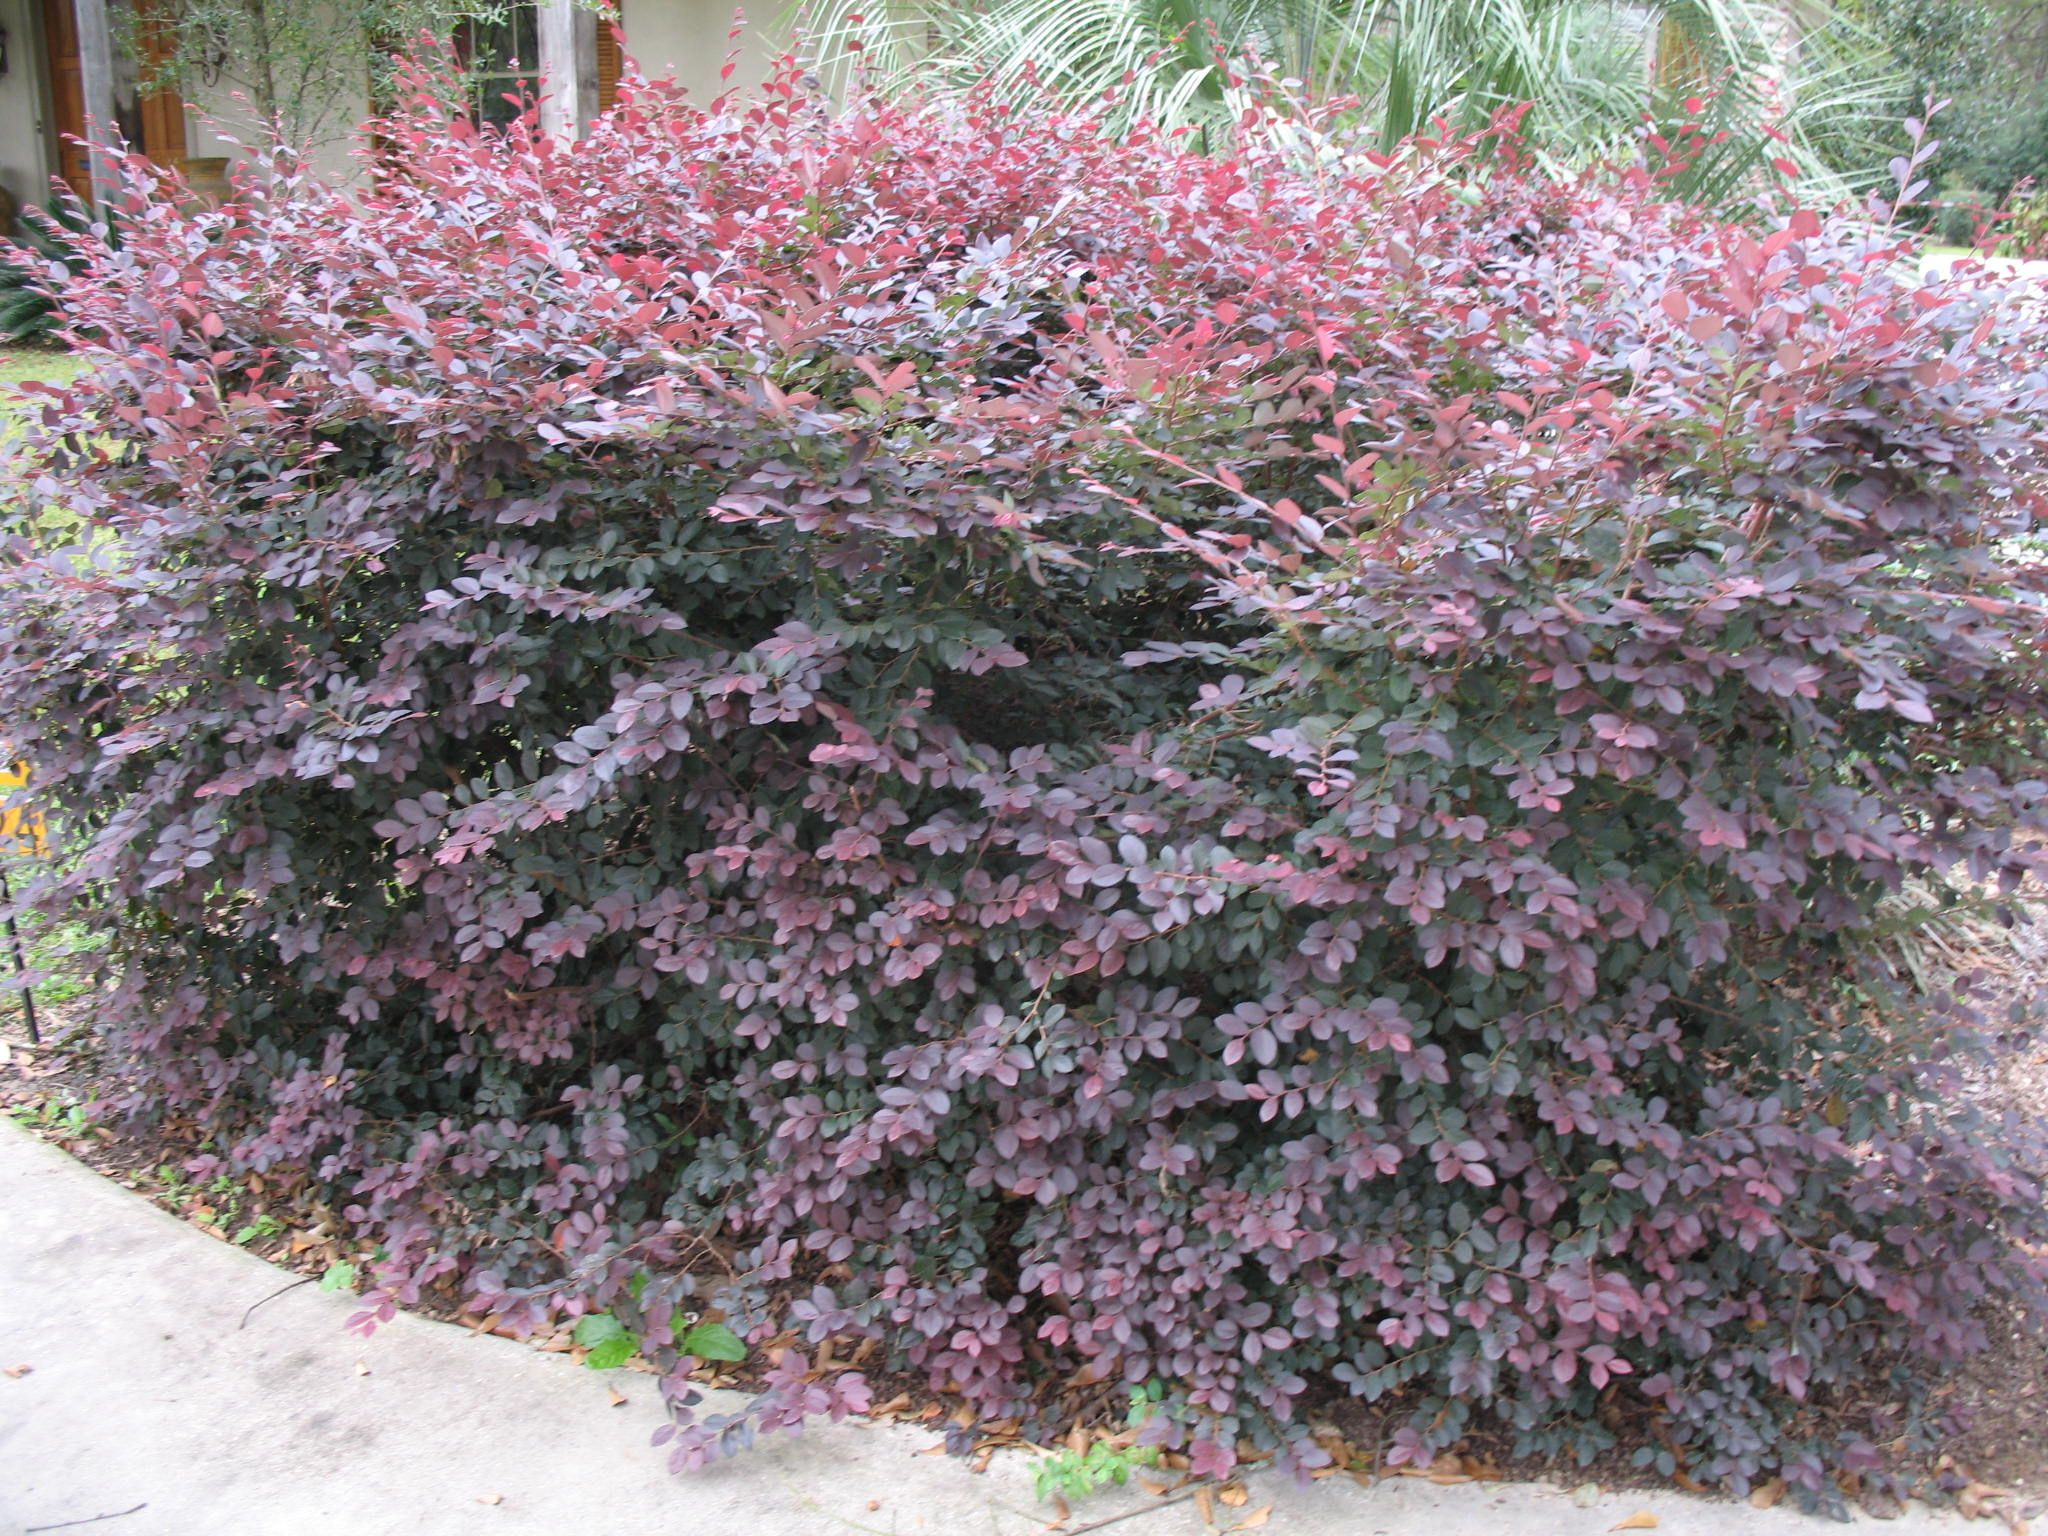 Best shrubs for full sun and privacy - Chinese Fringe Flower Plants Are Ornamental Evergreen Shrubs Many Gardeners Choose The Chinese Fringe Flower Plants Because Of The Ability To Regulate Its